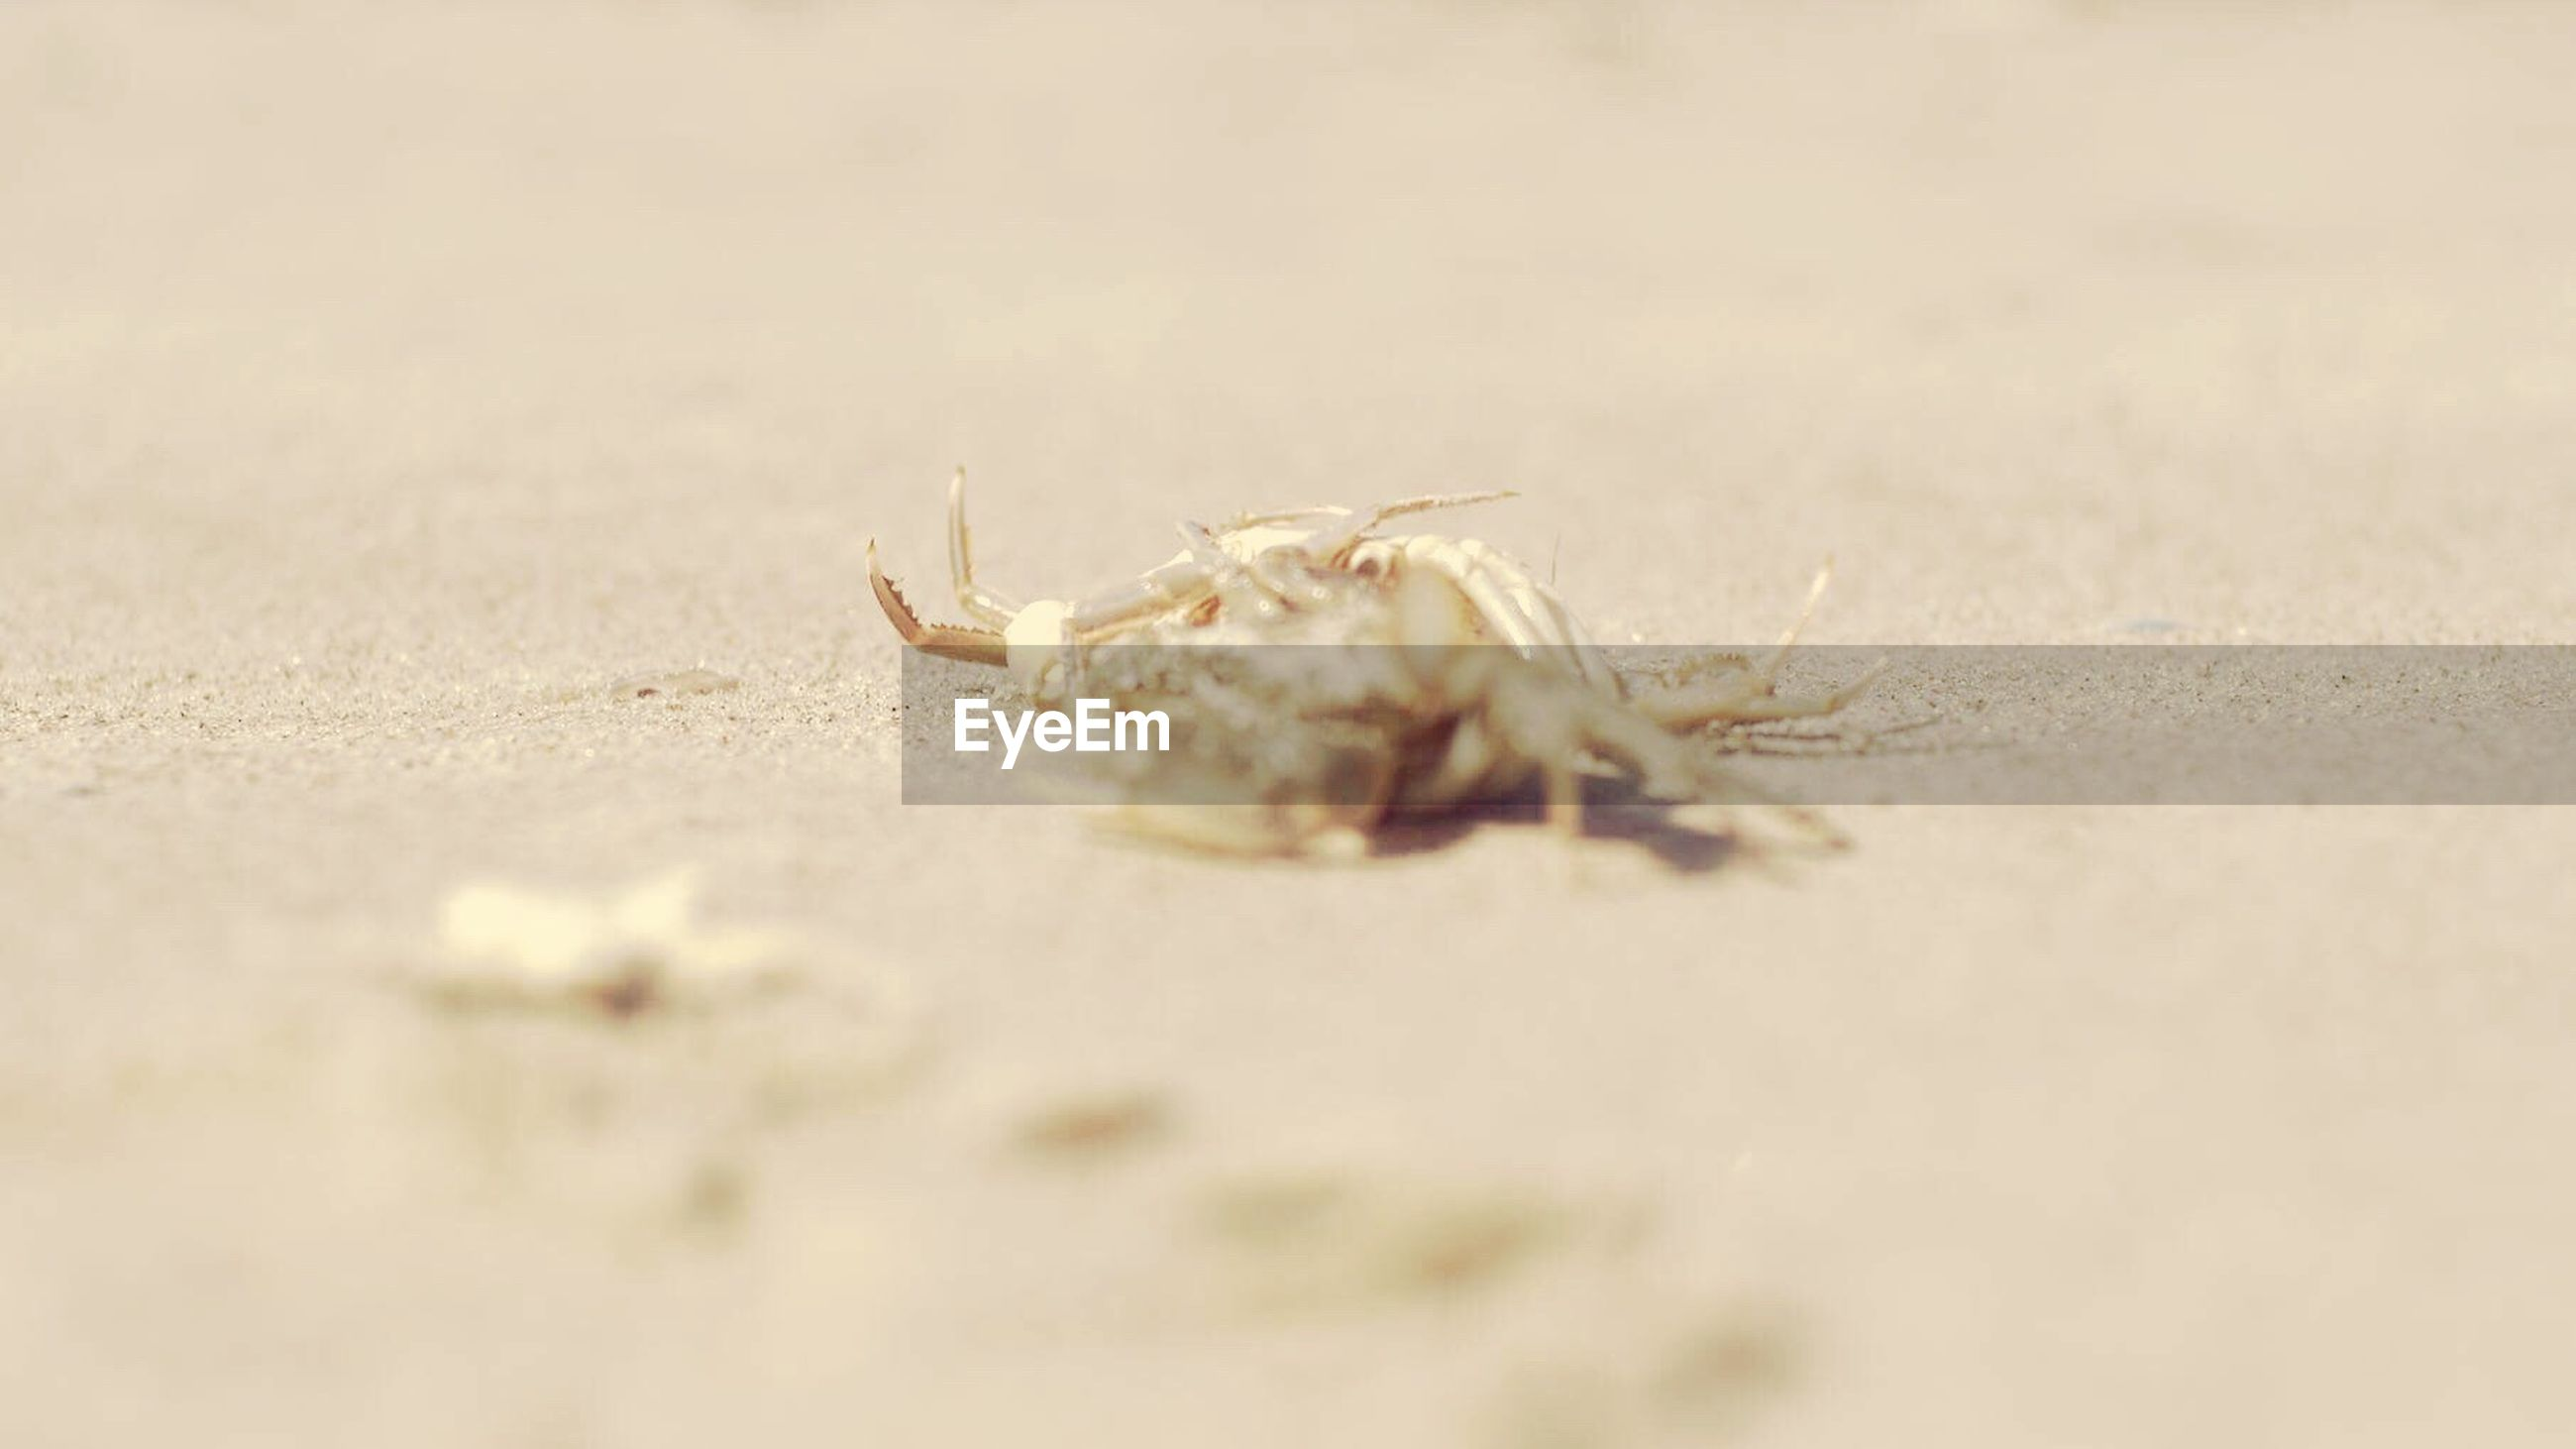 sand, one animal, beach, hermit crab, animal themes, animals in the wild, selective focus, close-up, animal wildlife, nature, day, no people, outdoors